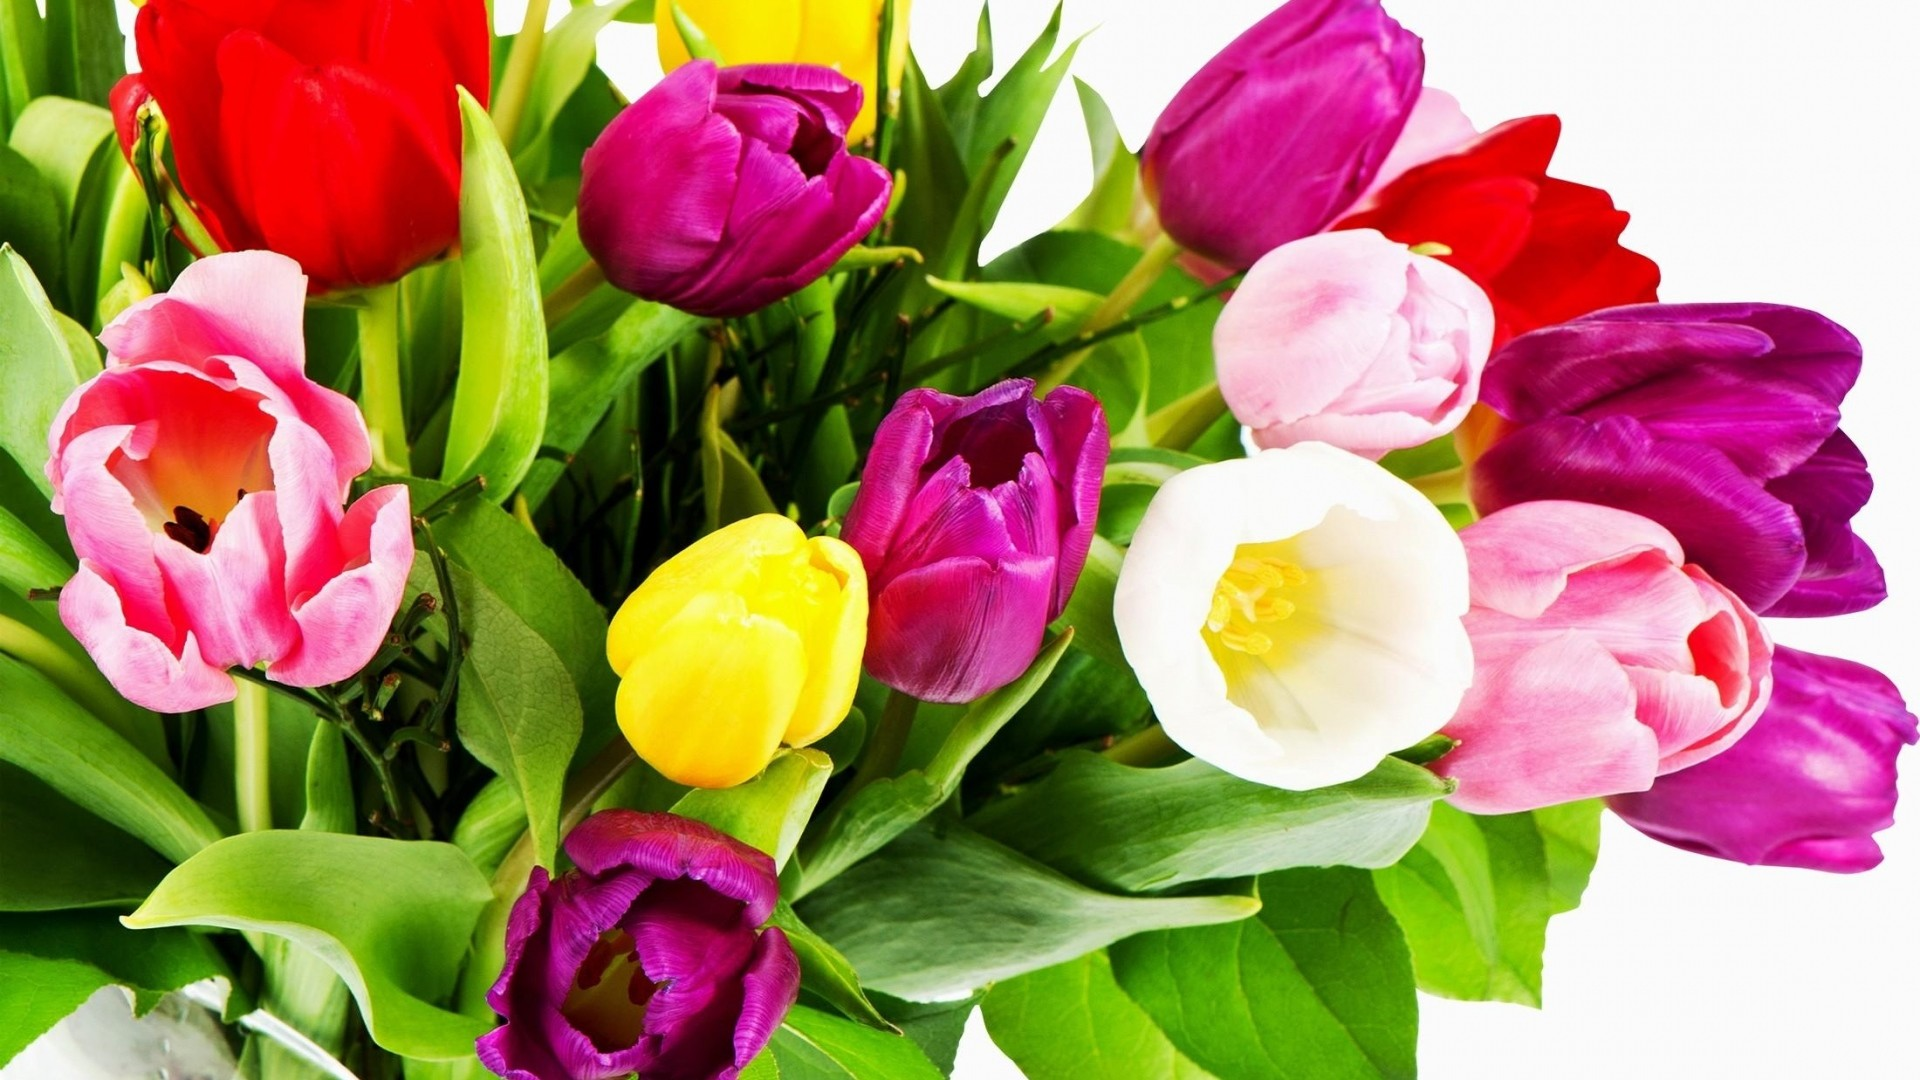 1920x1080  Wallpaper tulips, flowers, bouquet, bright, colorful, white  background